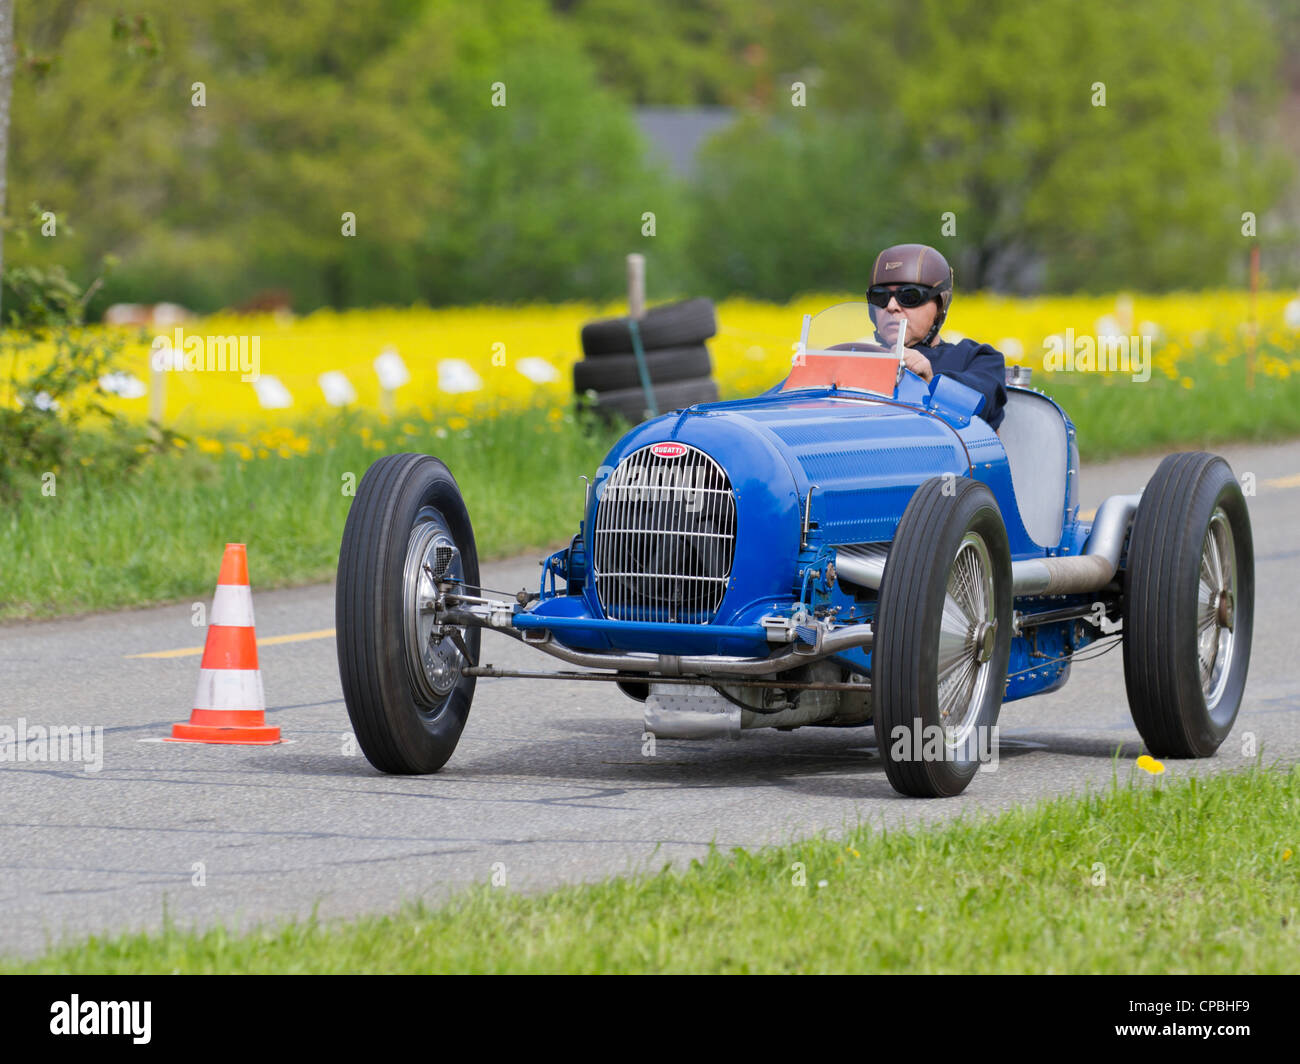 vintage pre war race car bugatti t 54 50b from 1936 at grand prix in stock photo royalty free. Black Bedroom Furniture Sets. Home Design Ideas